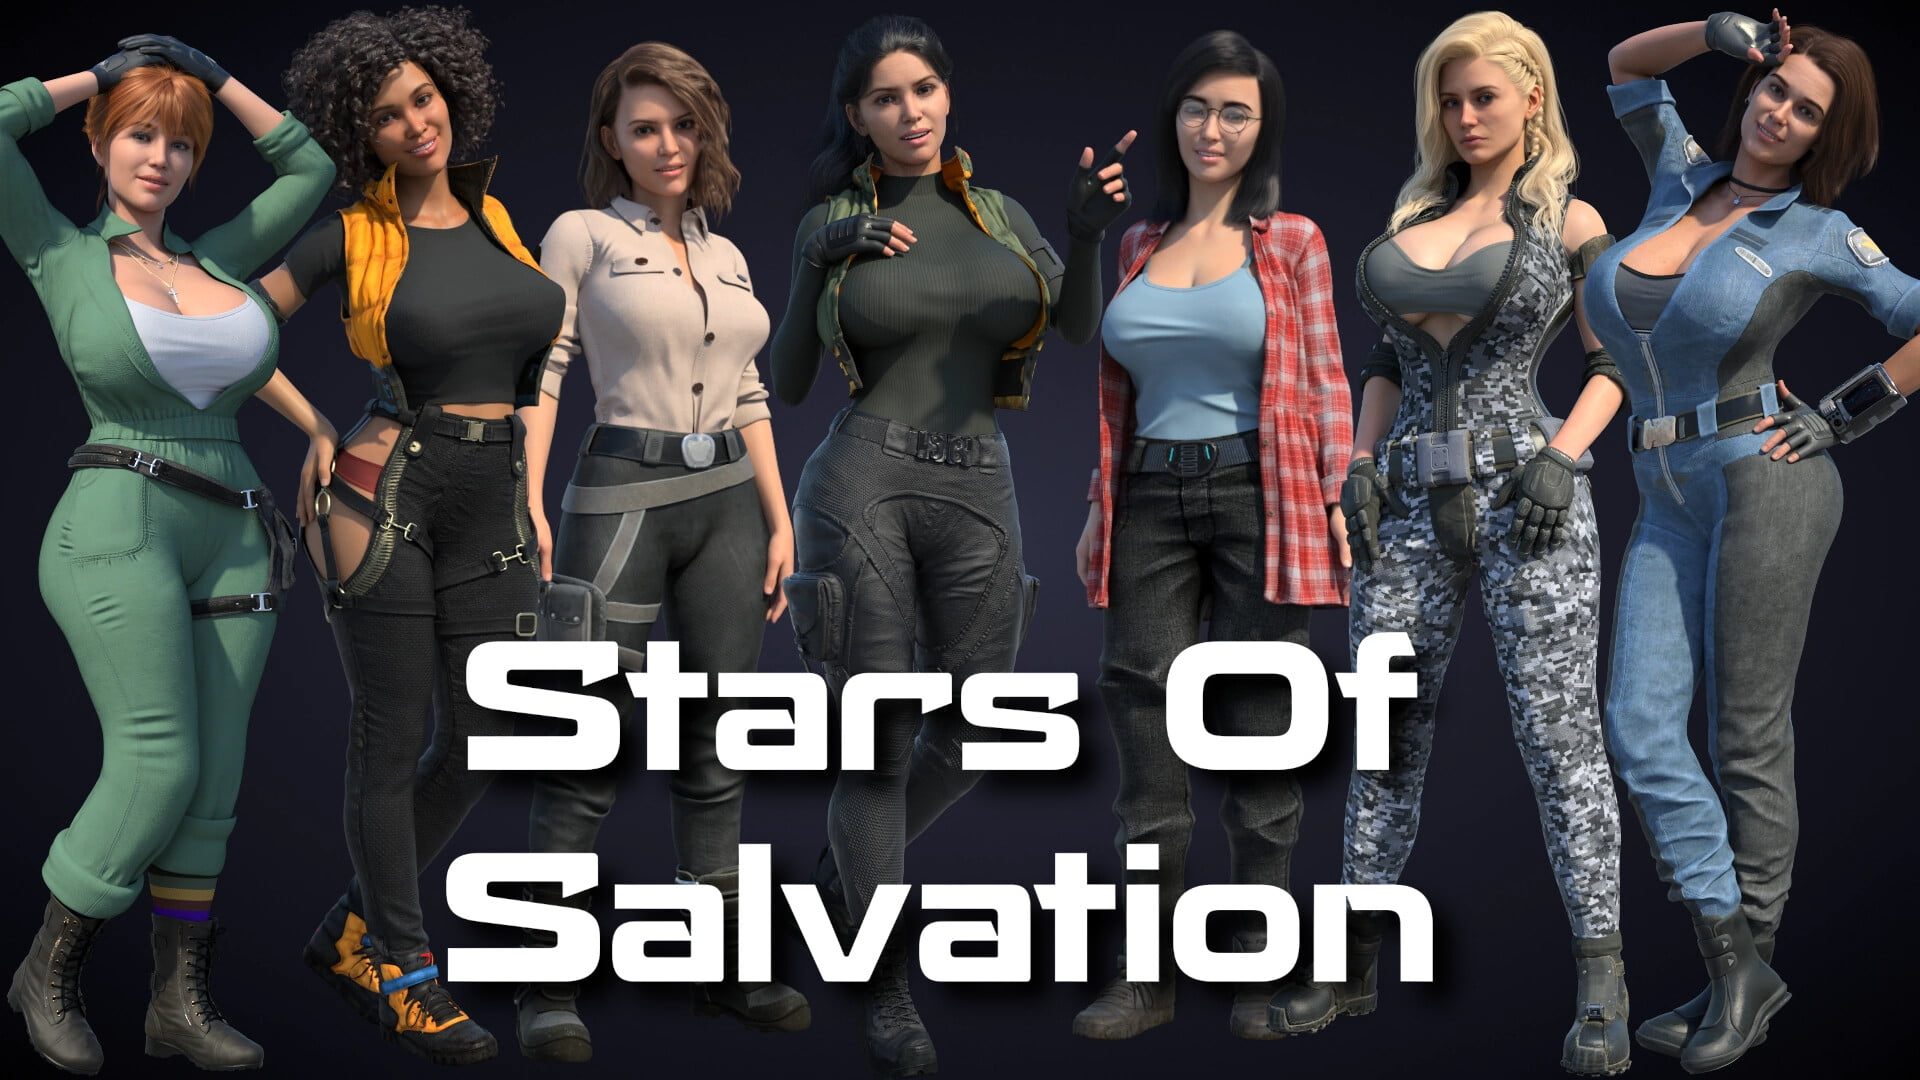 stars of salvation latest version download free porn game